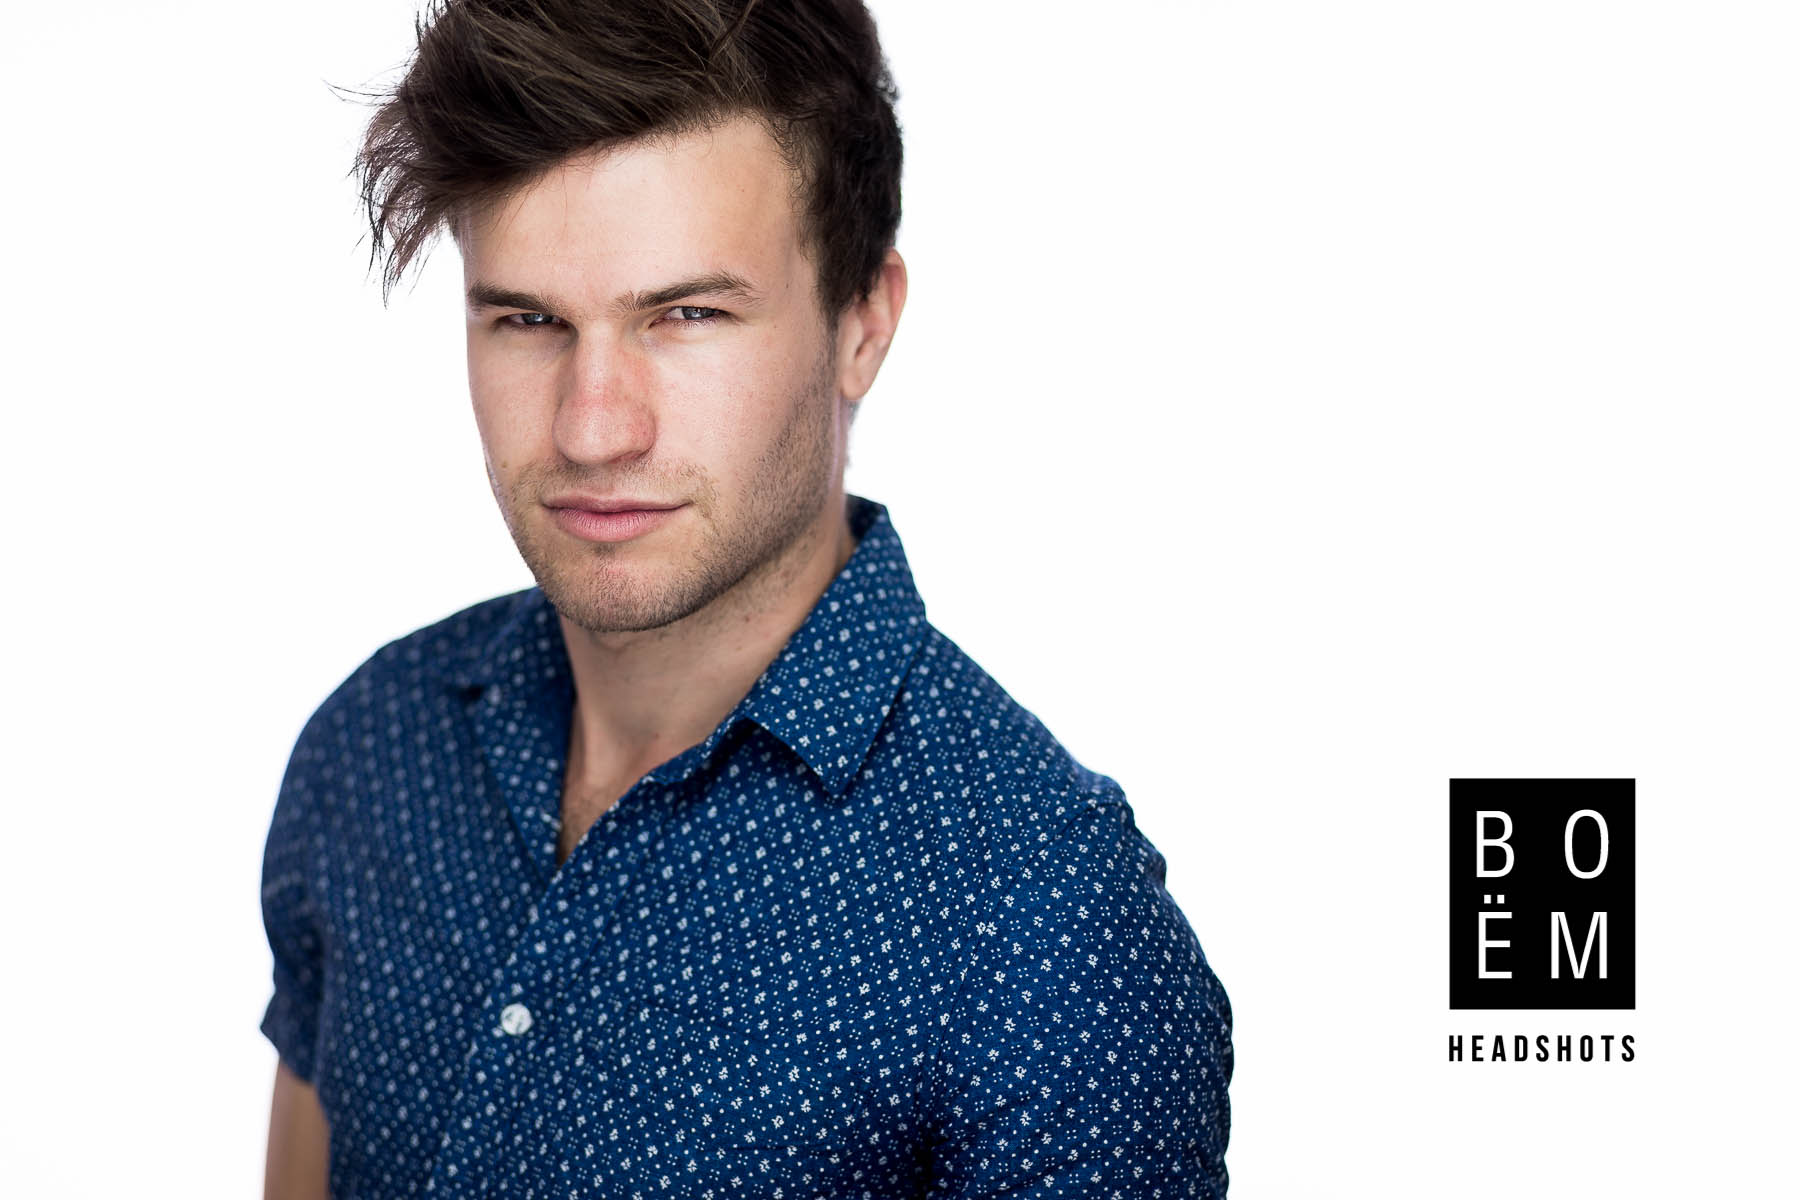 A look at our headshot session with Ollie today in the Adelaide studio. He rocked it and I'm very excited to share the rest with you soon.